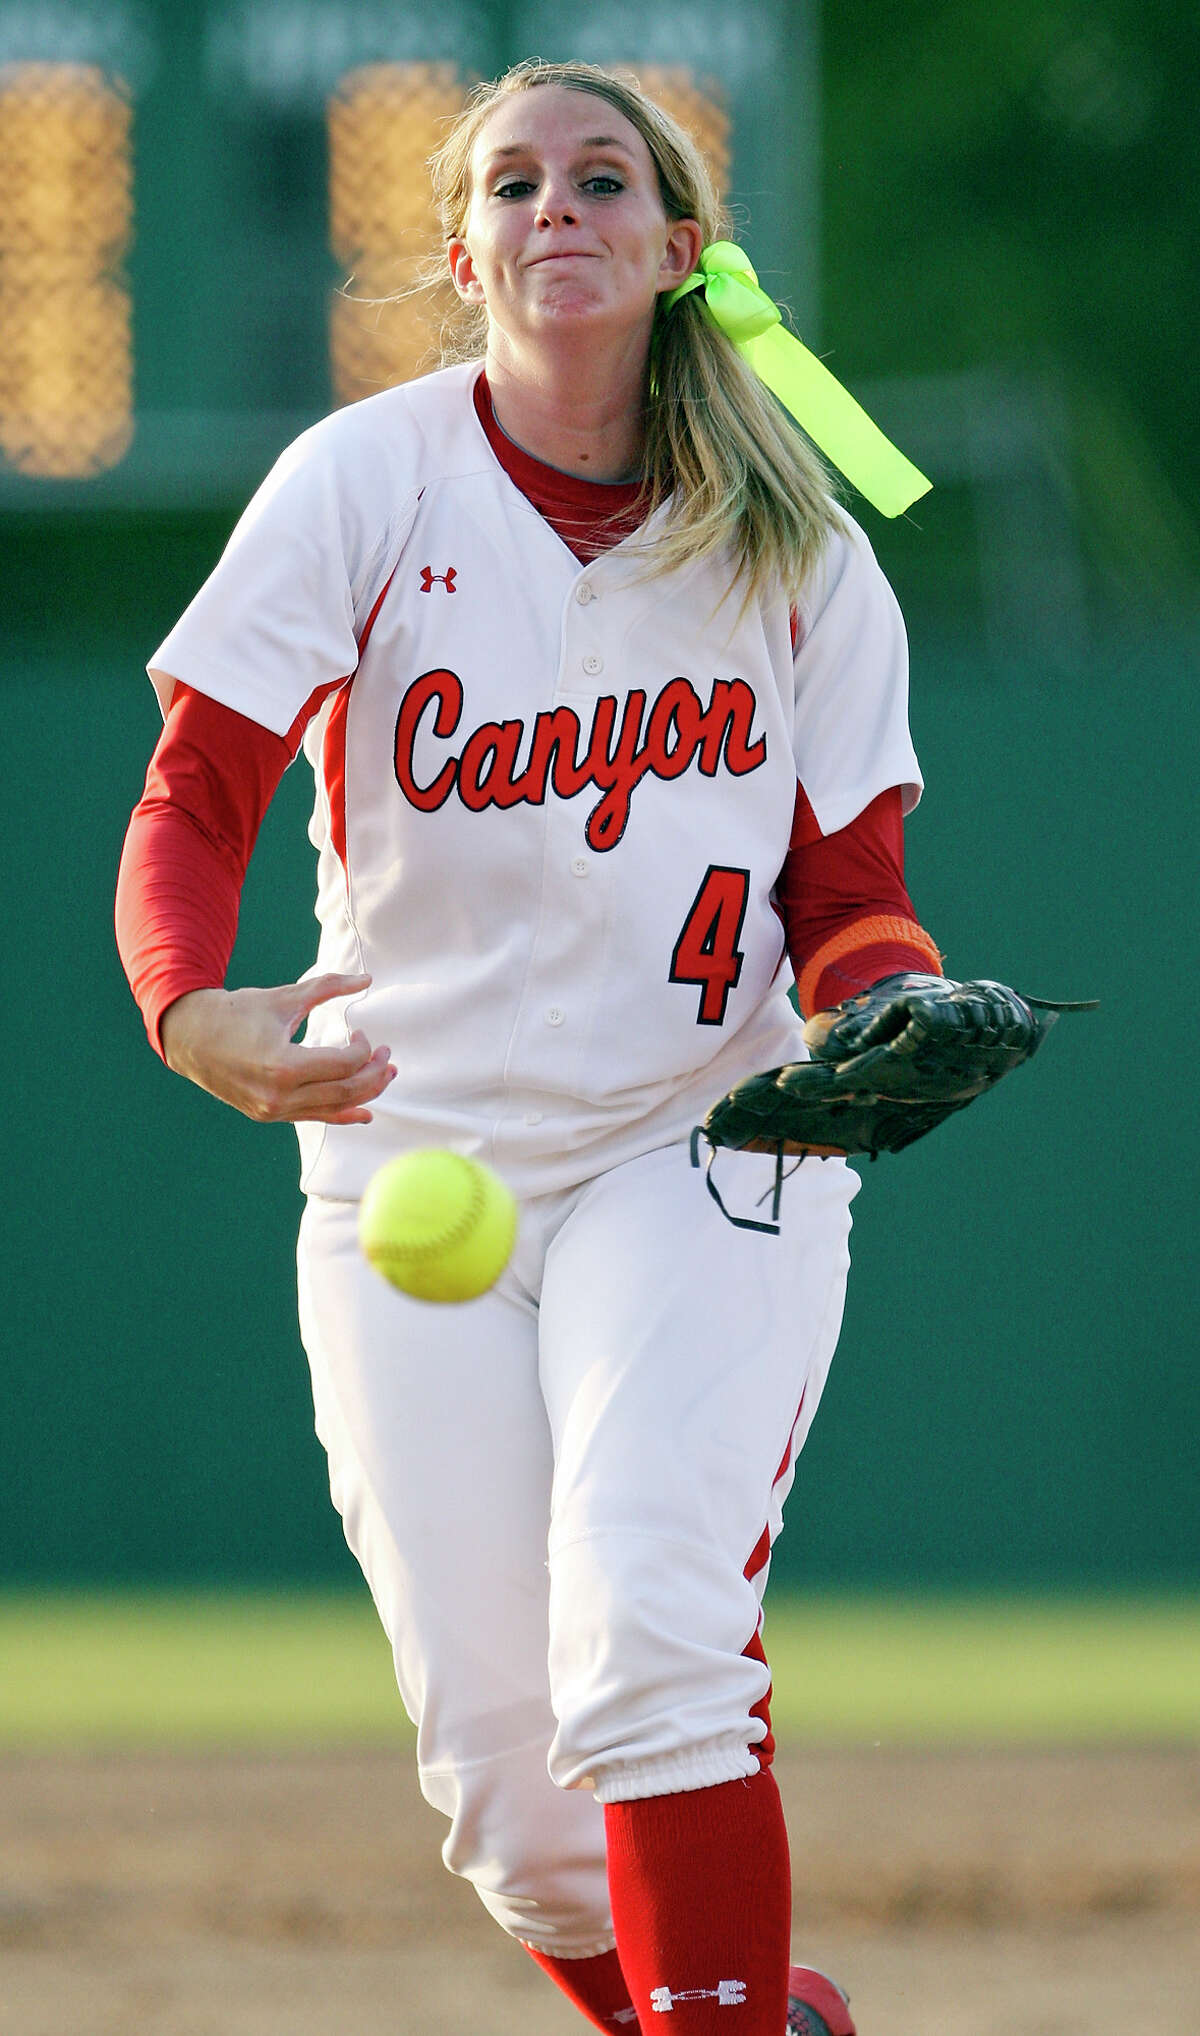 New Braunfels Canyon's Marilee Burge pitches againt Smithson Valley during their Region IV-4A final softball game Thursday, May 24, 2012 at NEISD Softball Complex. Smithson Valley won 7-5.